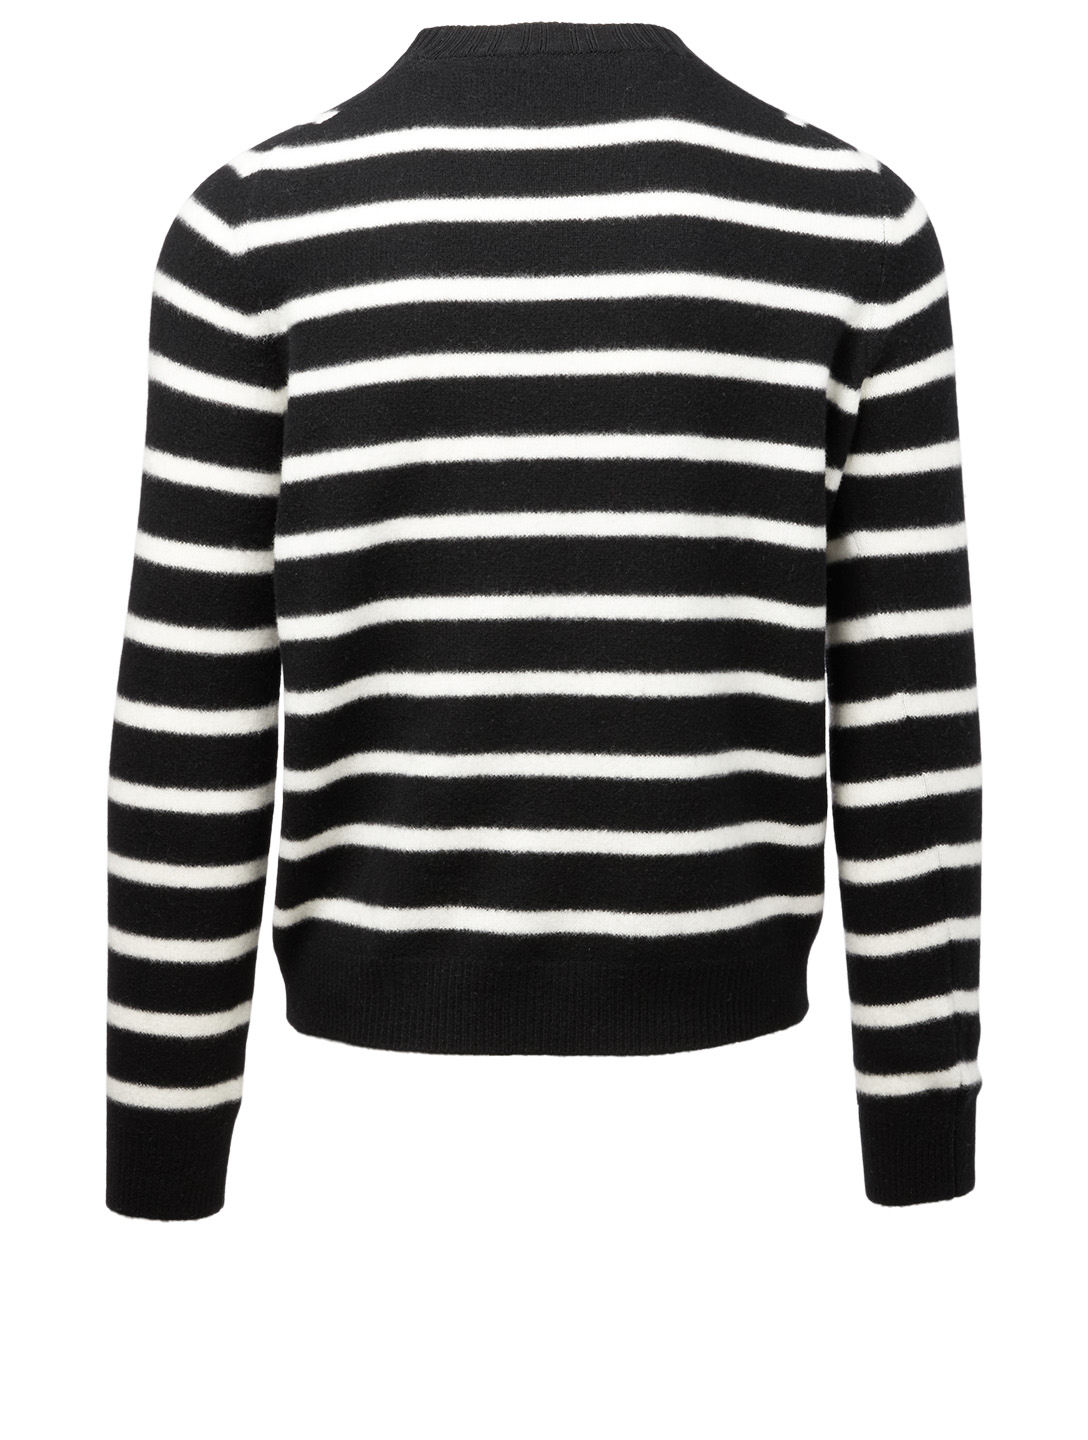 SAINT LAURENT Wool Sweater In Stripe Print Men's Black